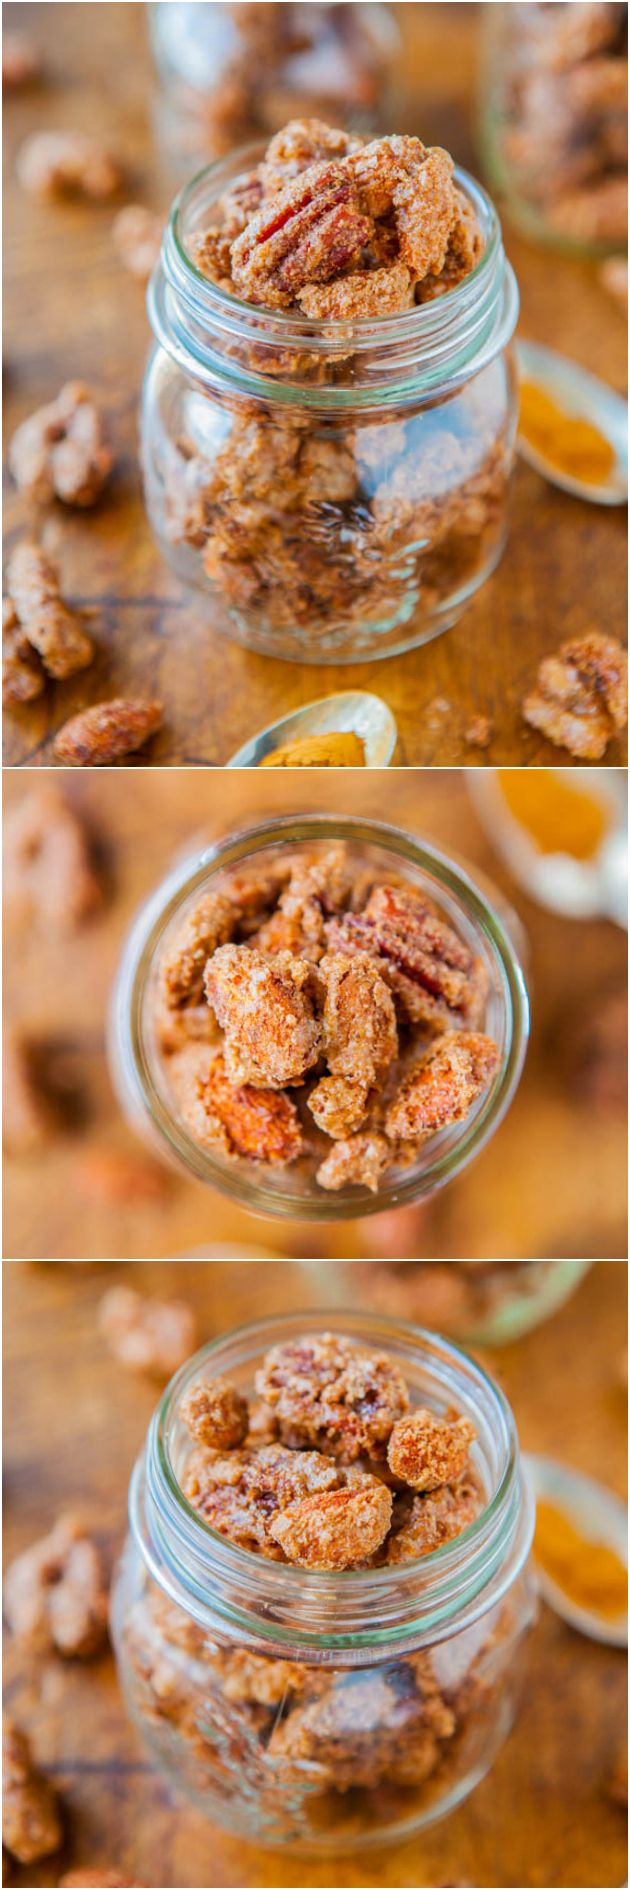 Sweet with Heat Cinnamon Sugar Candied Nuts - Make shopping mall-style candied…